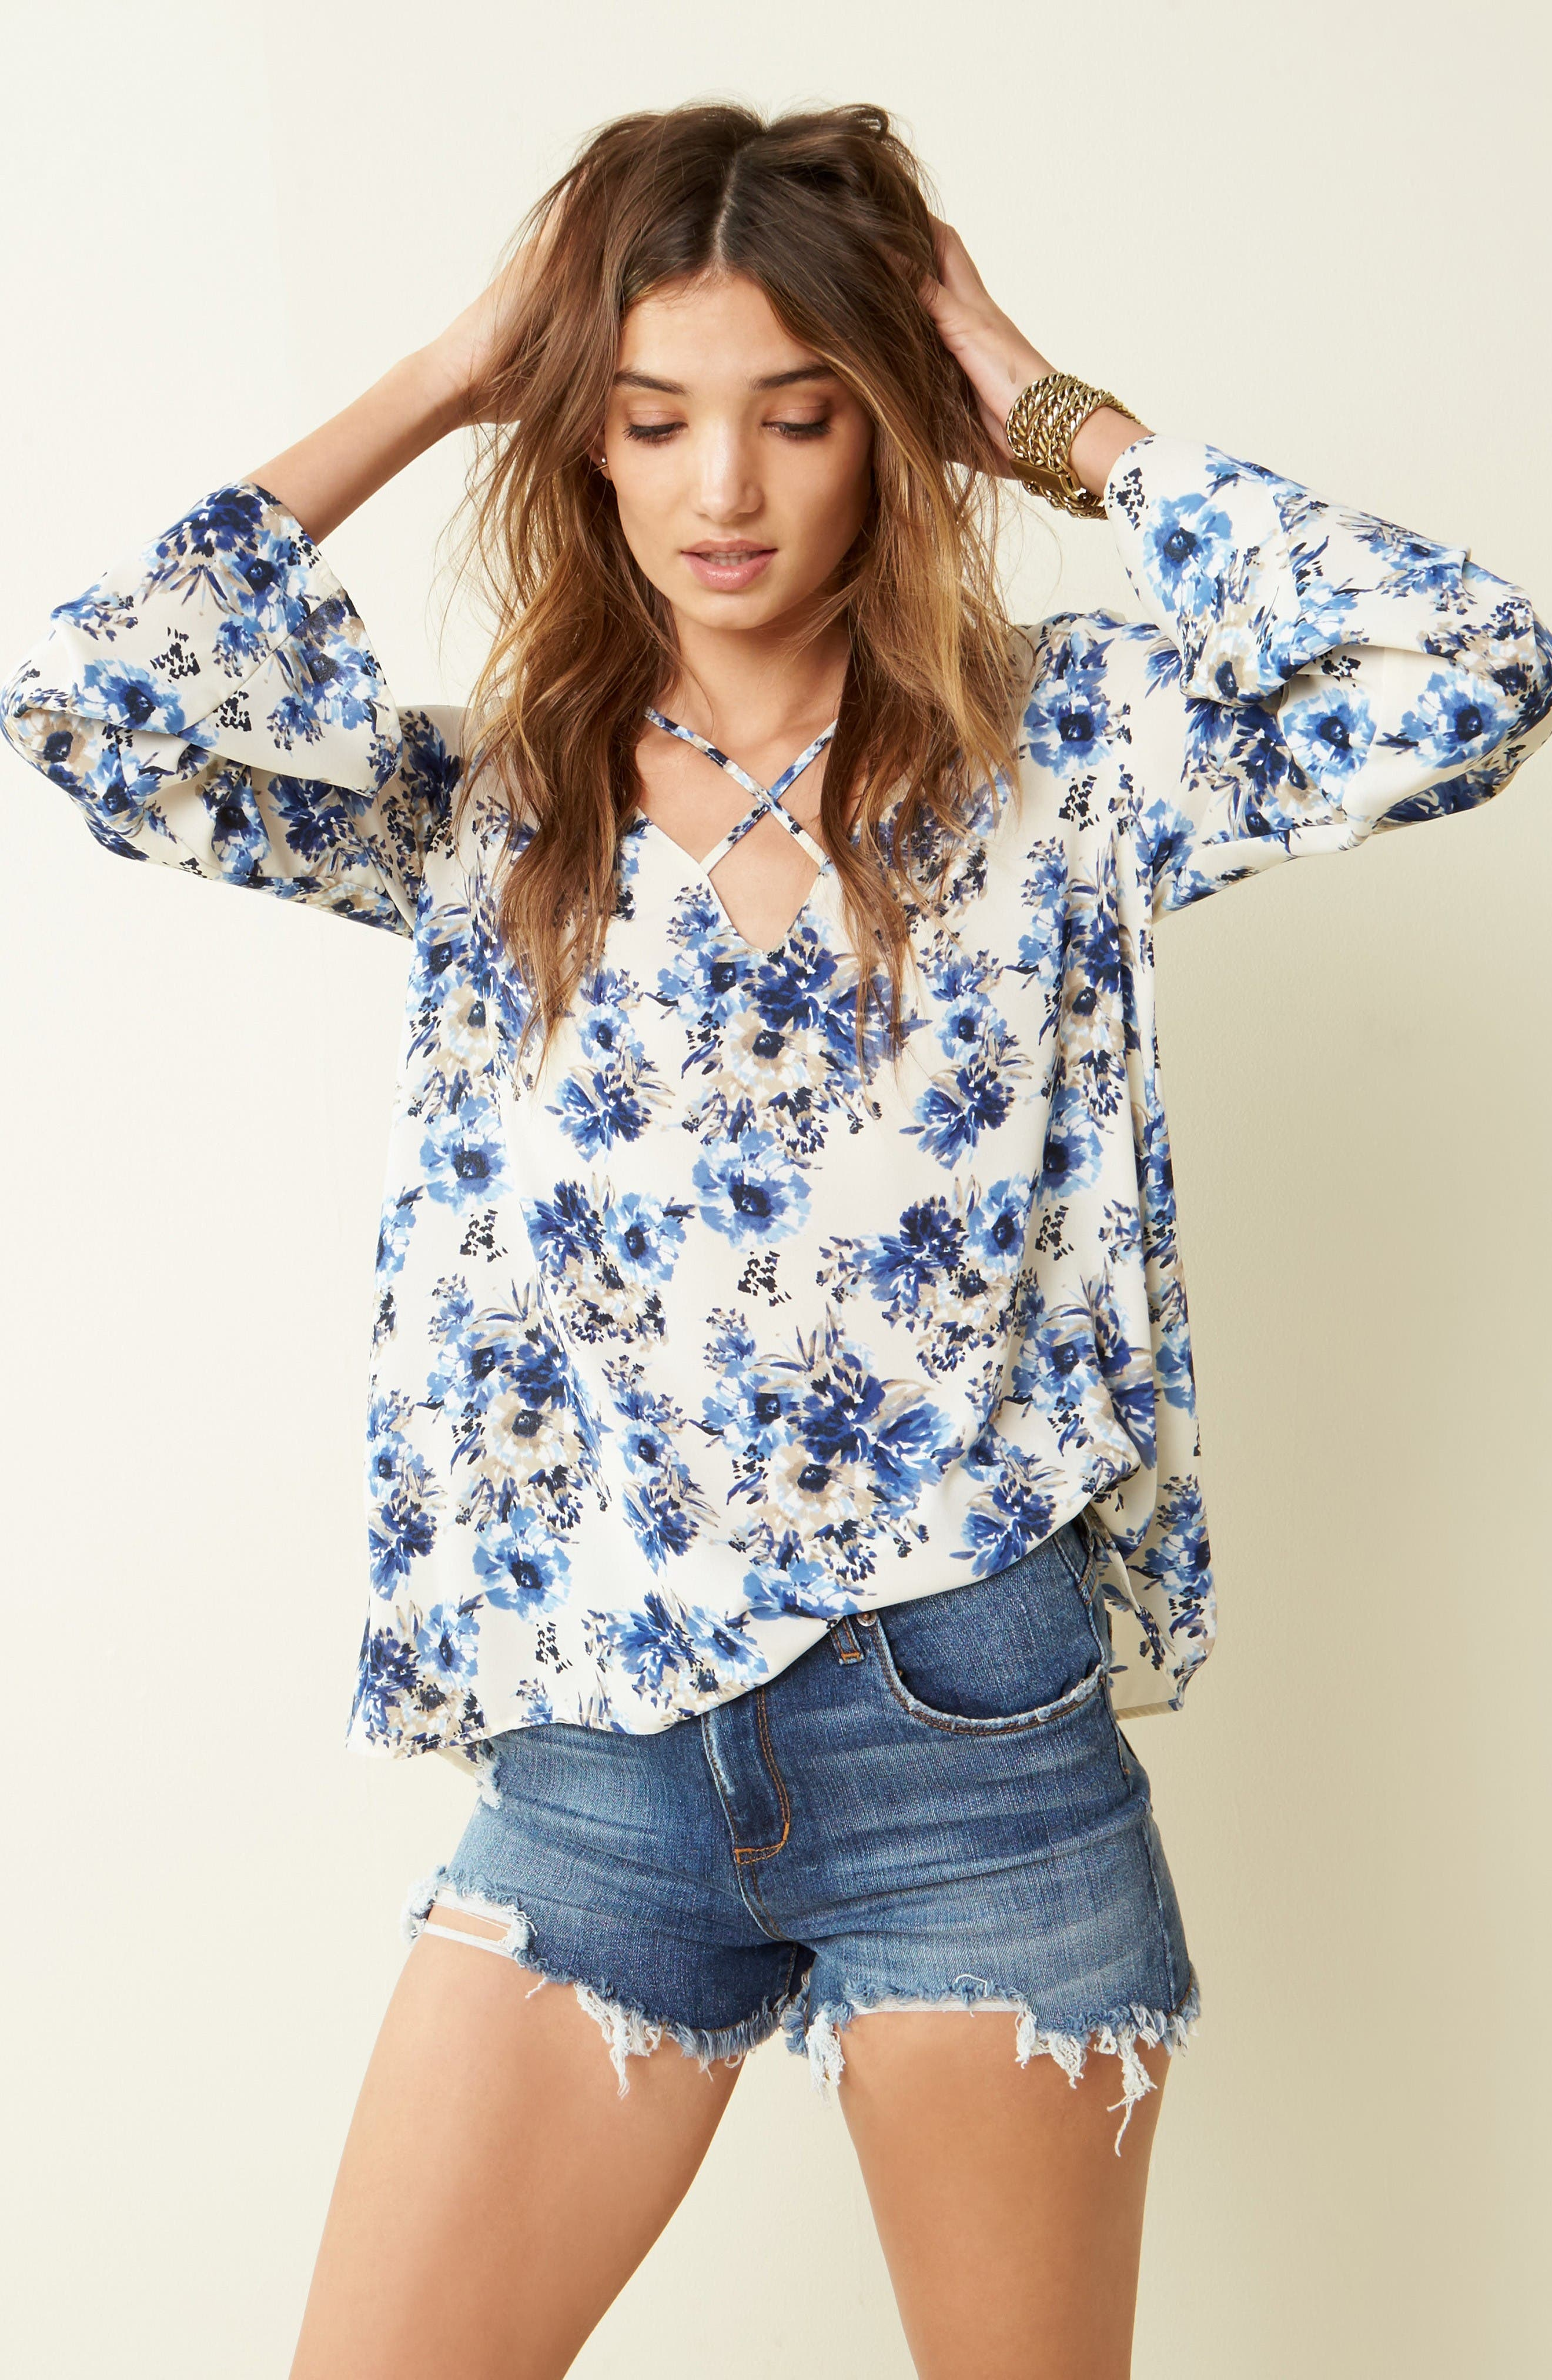 Lush Blouse & STS Blue Shorts Outfit with Accessories